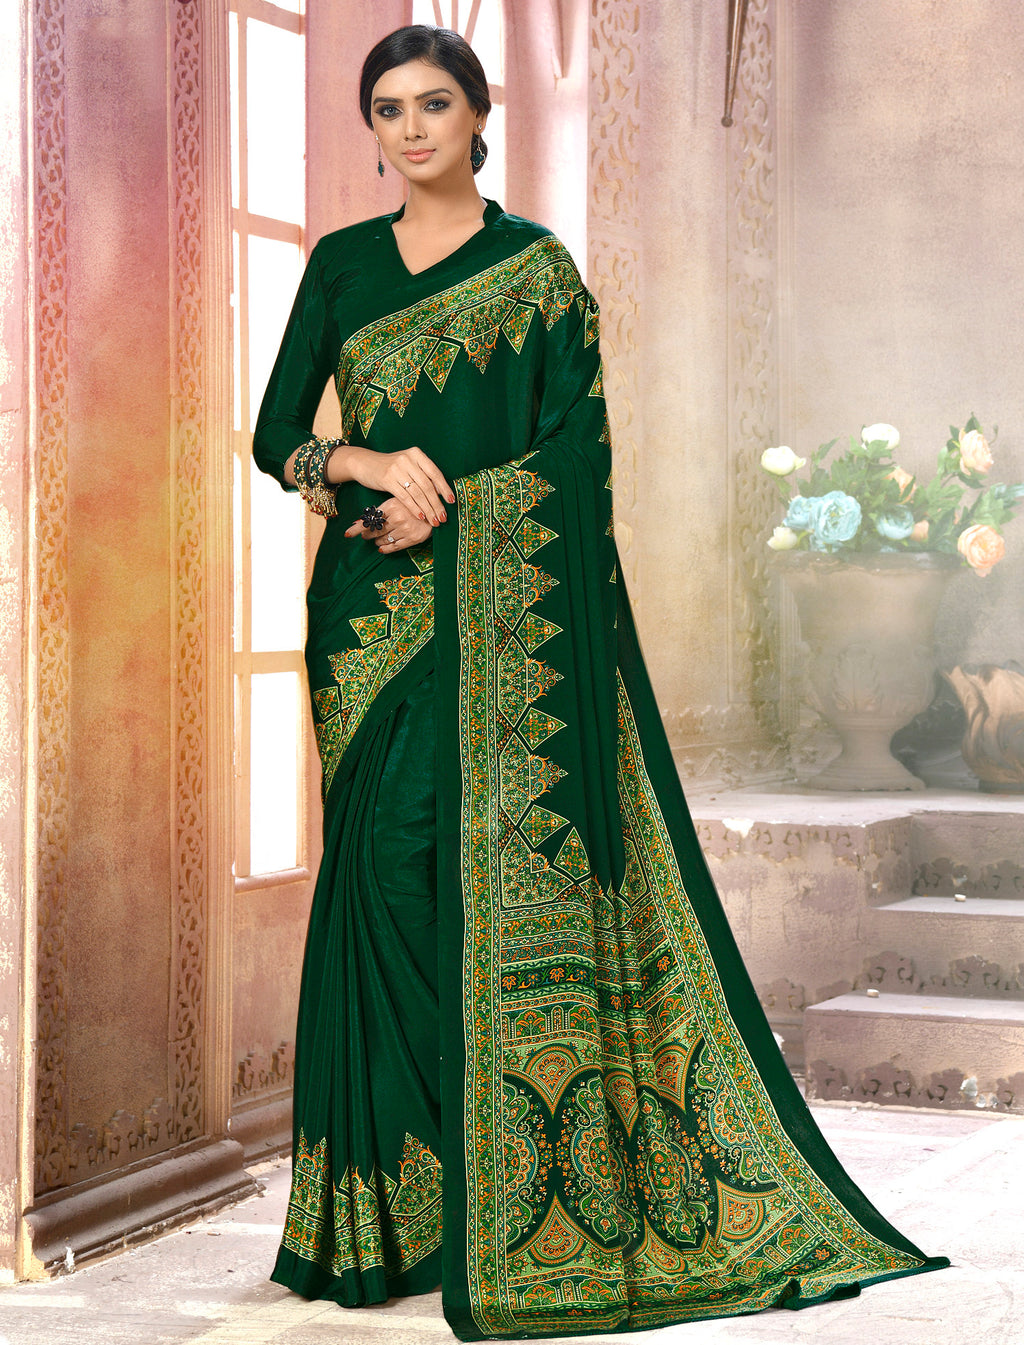 Green Color Crepe Soft & Light Weight Printed Sarees NYF-7266